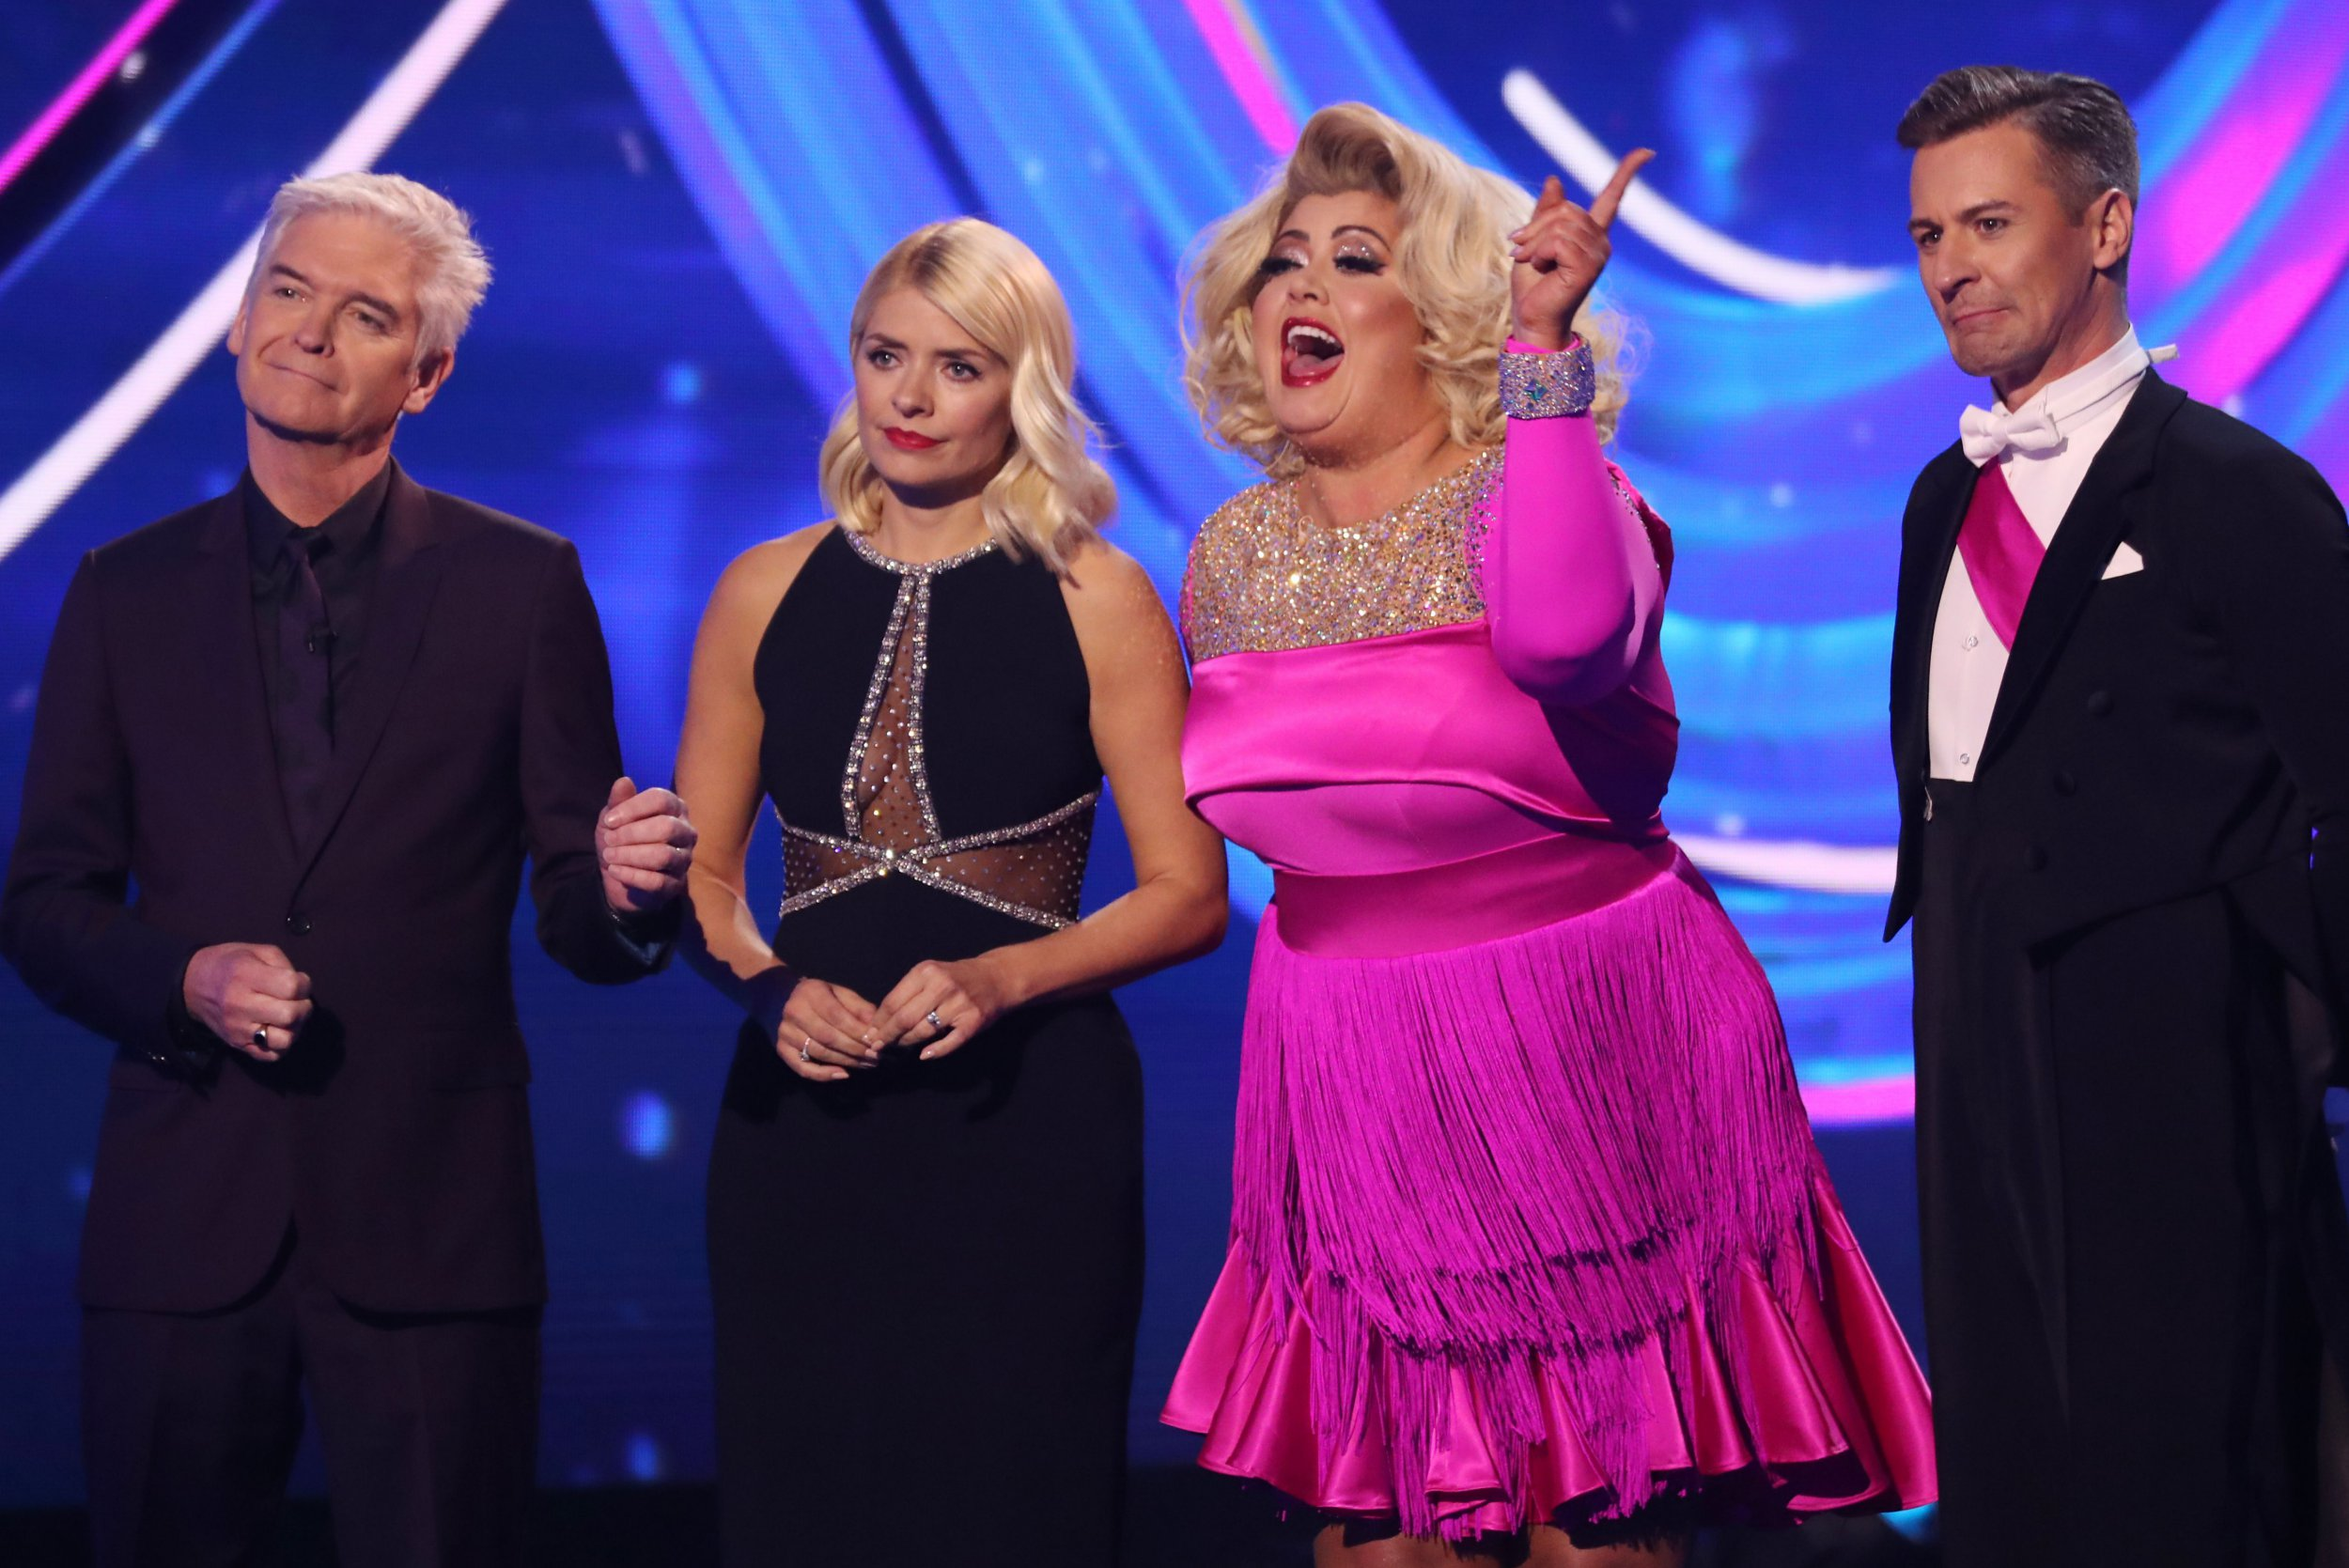 Editorial use only Mandatory Credit: Photo by Matt Frost/ITV/REX (10067937ge) Phillip Schofield and Holly Willoughby, Gemma Collins and Matt Evers 'Dancing on Ice' TV show, Series 11, Episode 3, Hertfordshire, UK - 20 Jan 2019